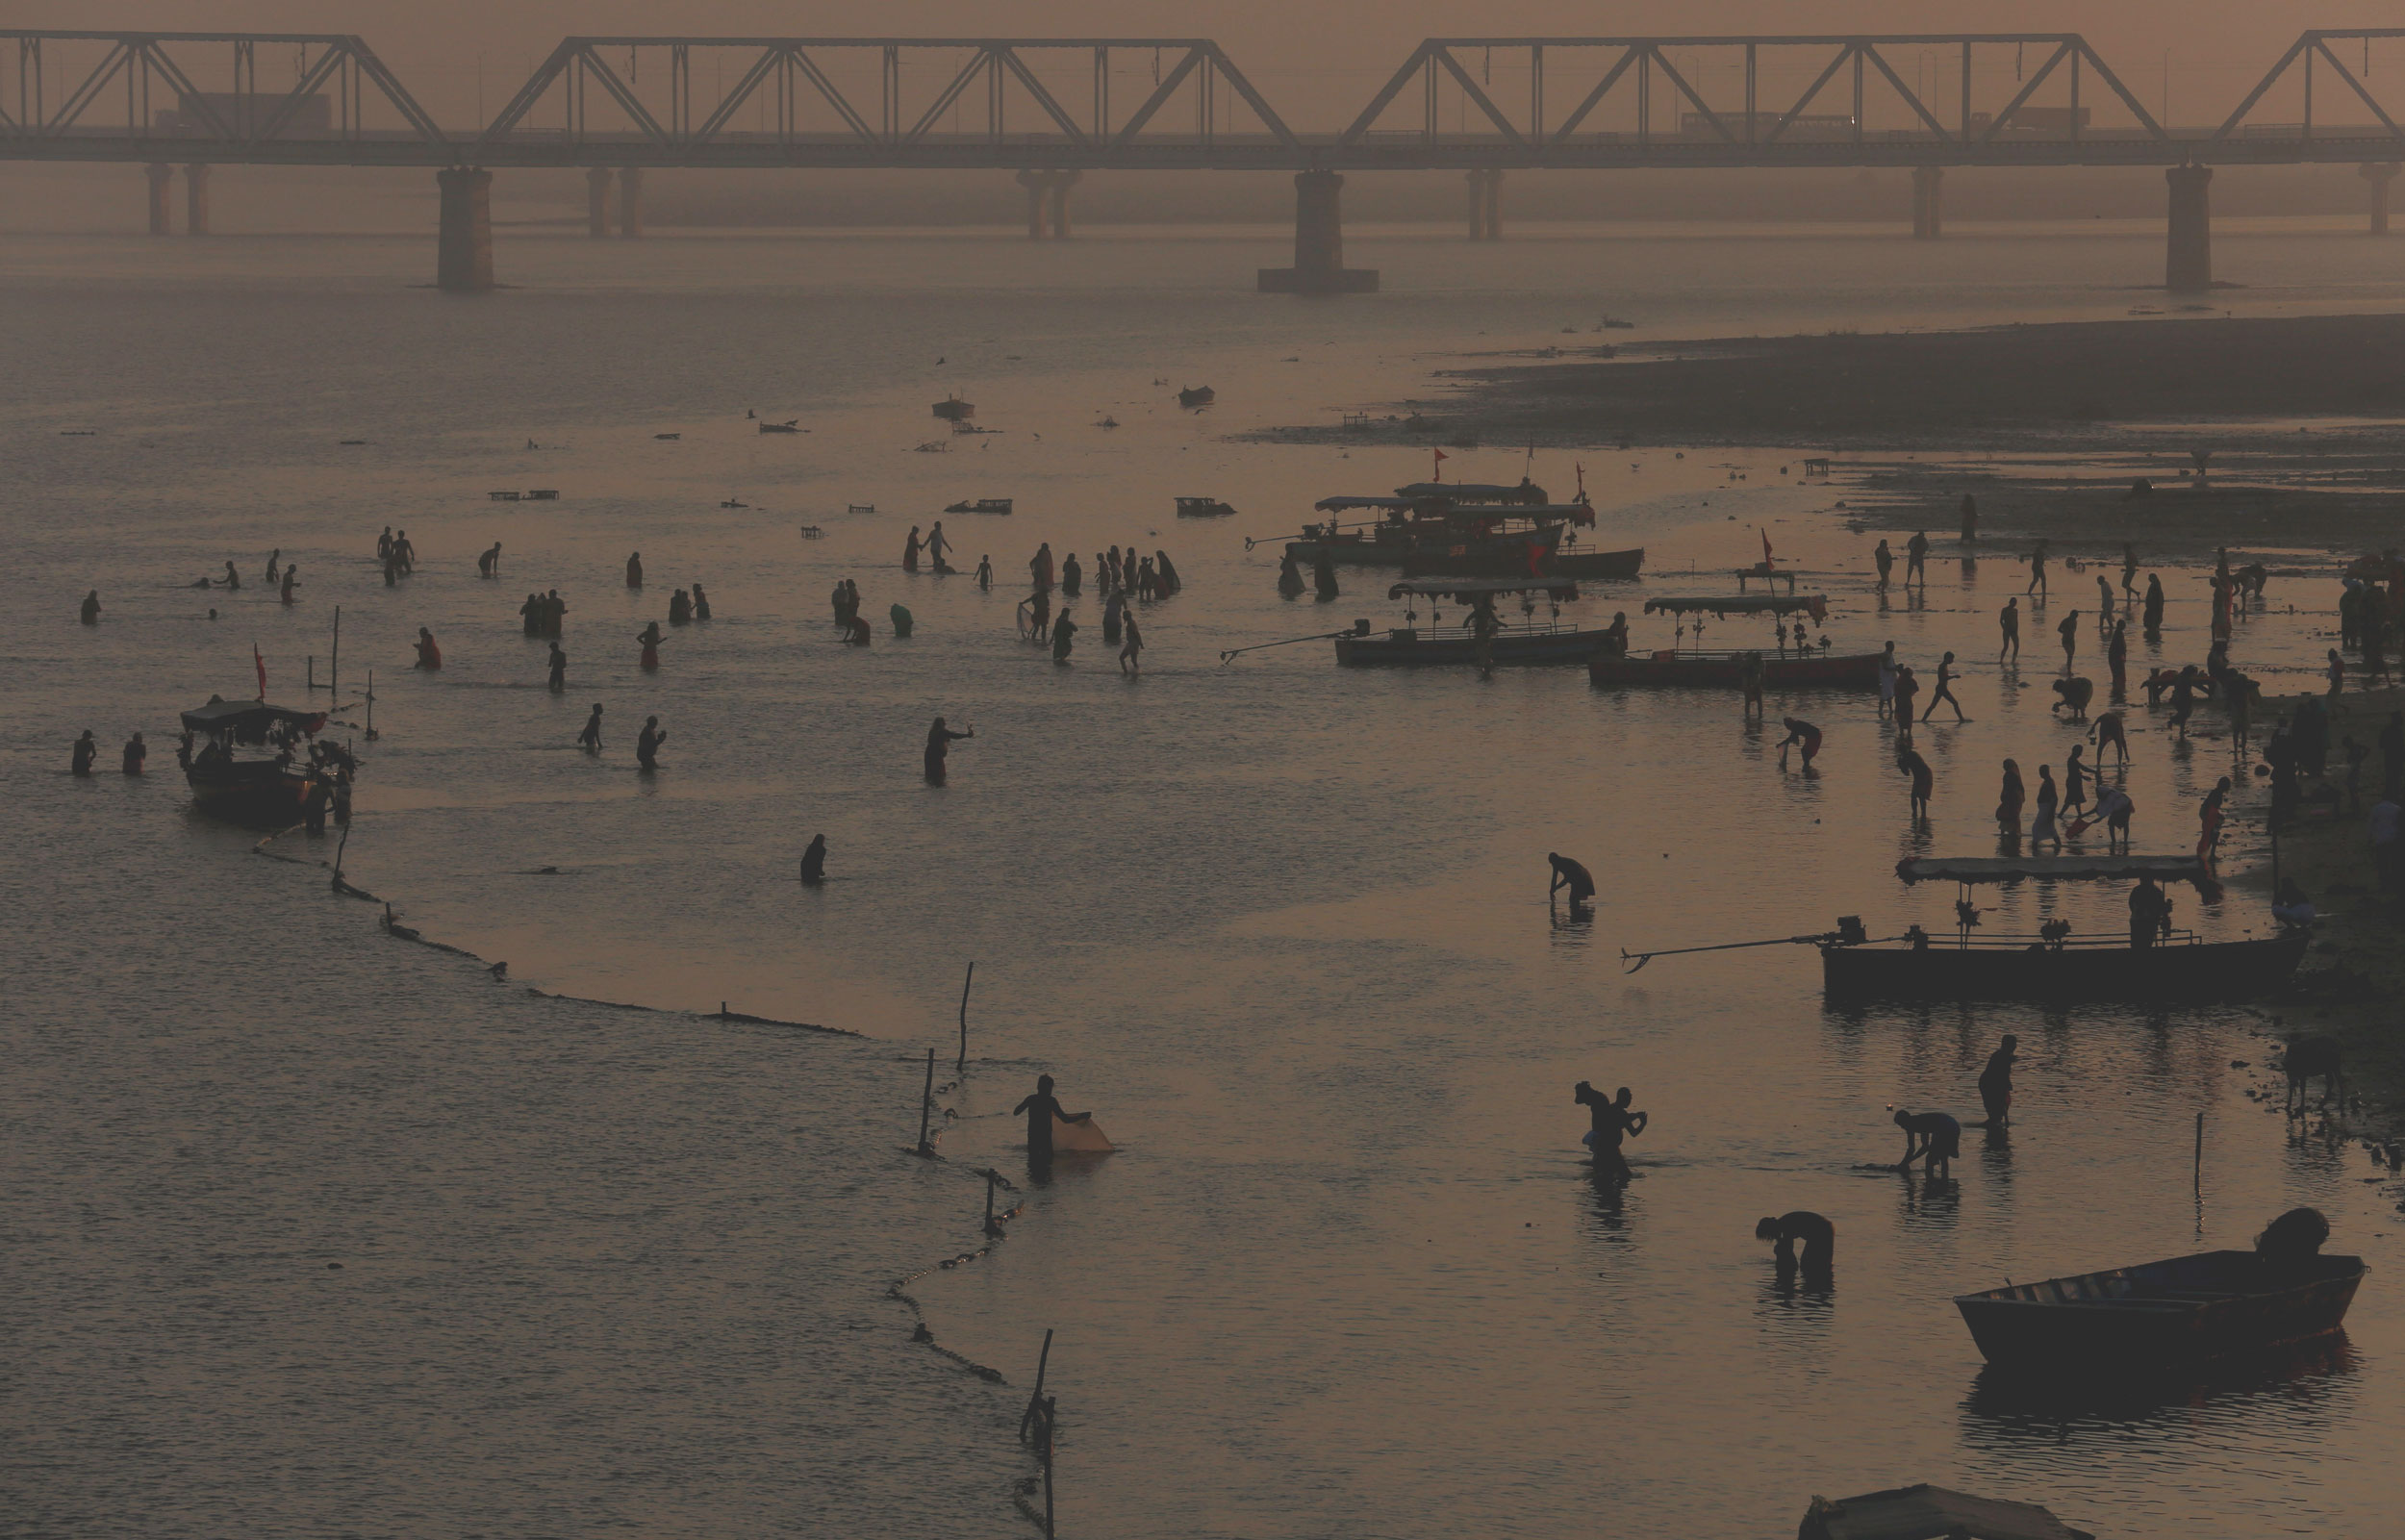 Hindu devotees pray on the banks of the Saryu River in Ayodhya. To provide 'restitution' to the Muslim community for the unlawful destruction of its place of worship, the Supreme Court has also asked the State to hand over five acres of land at a 'prominent' place in Ayodhya.